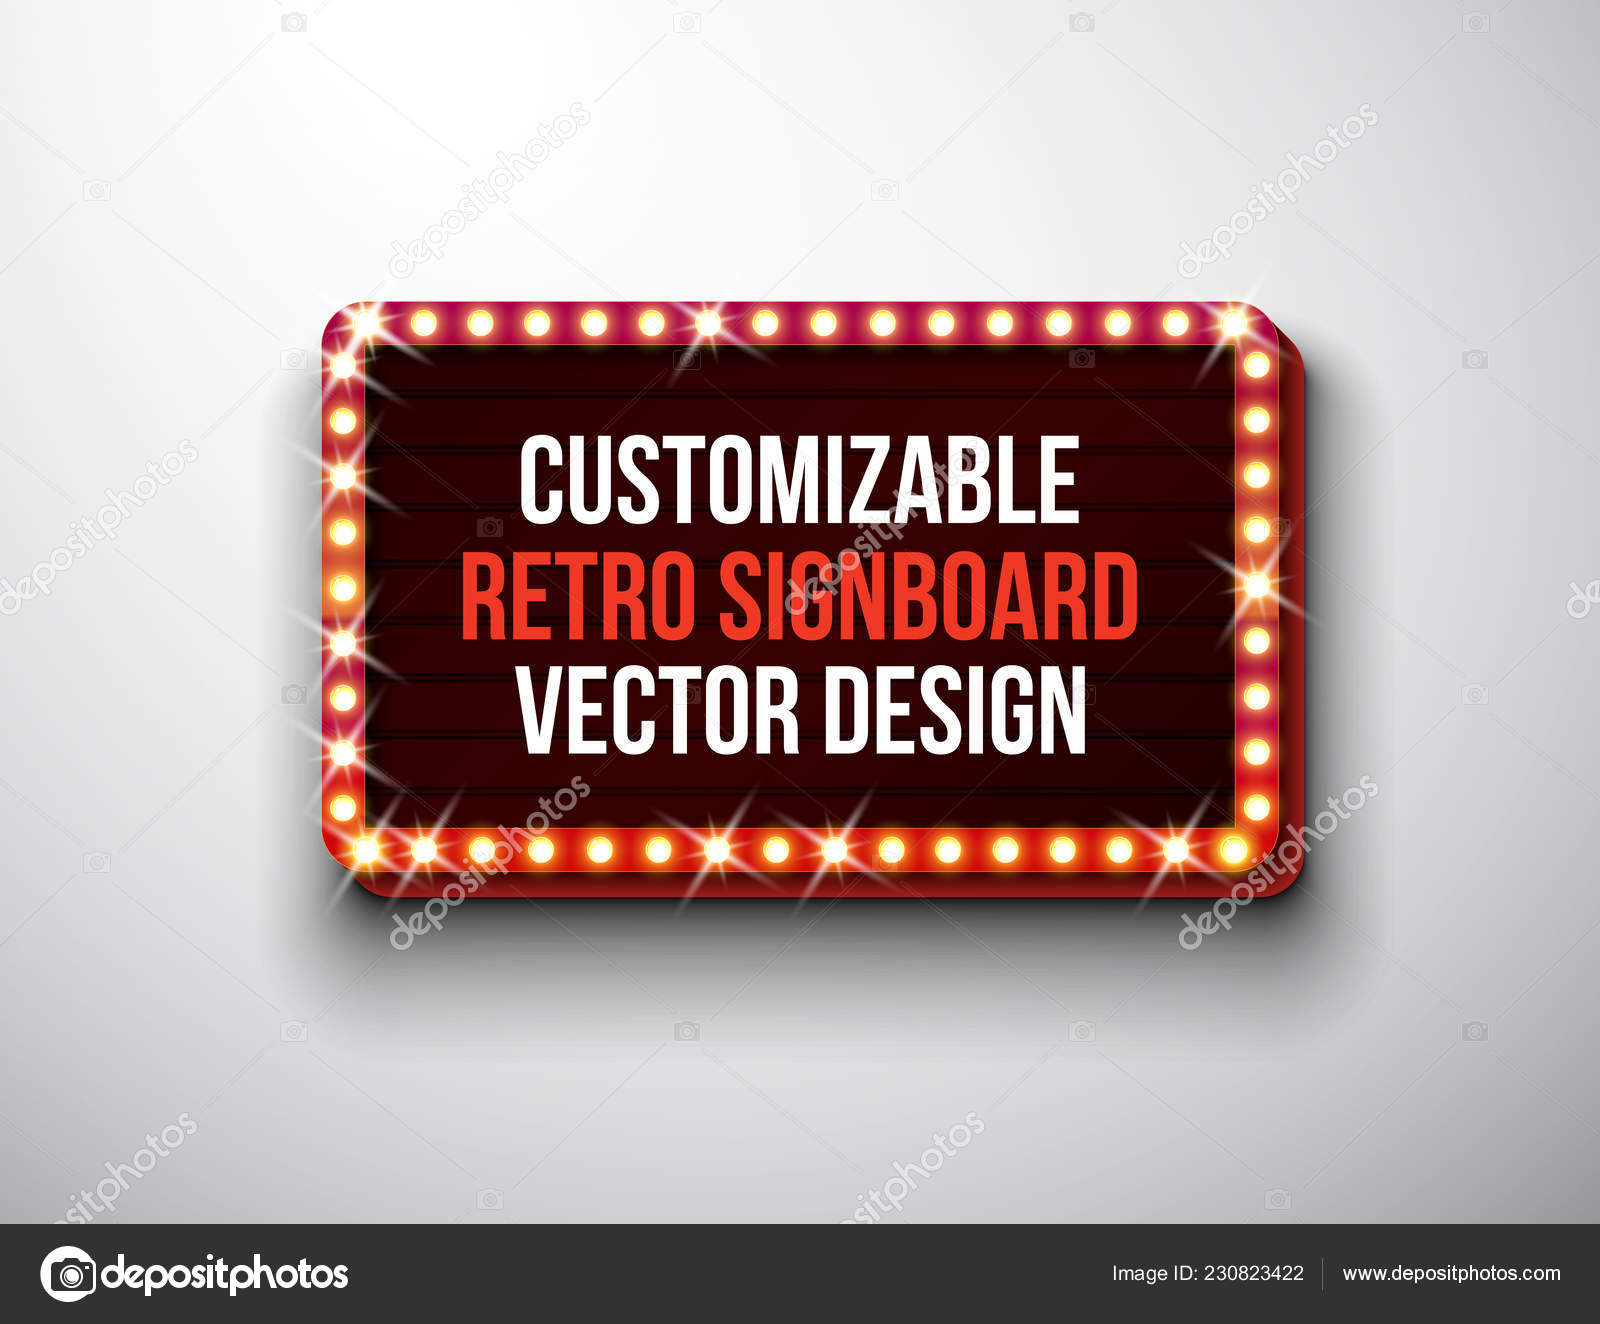 Vector Retro Signboard Or Lightbox Illustration With Customizable Design On Clean Background Light Banner Or Vintage Bright Billboard For Advertising Or Your Project Show Night Events Cinema Or Stock Vector C